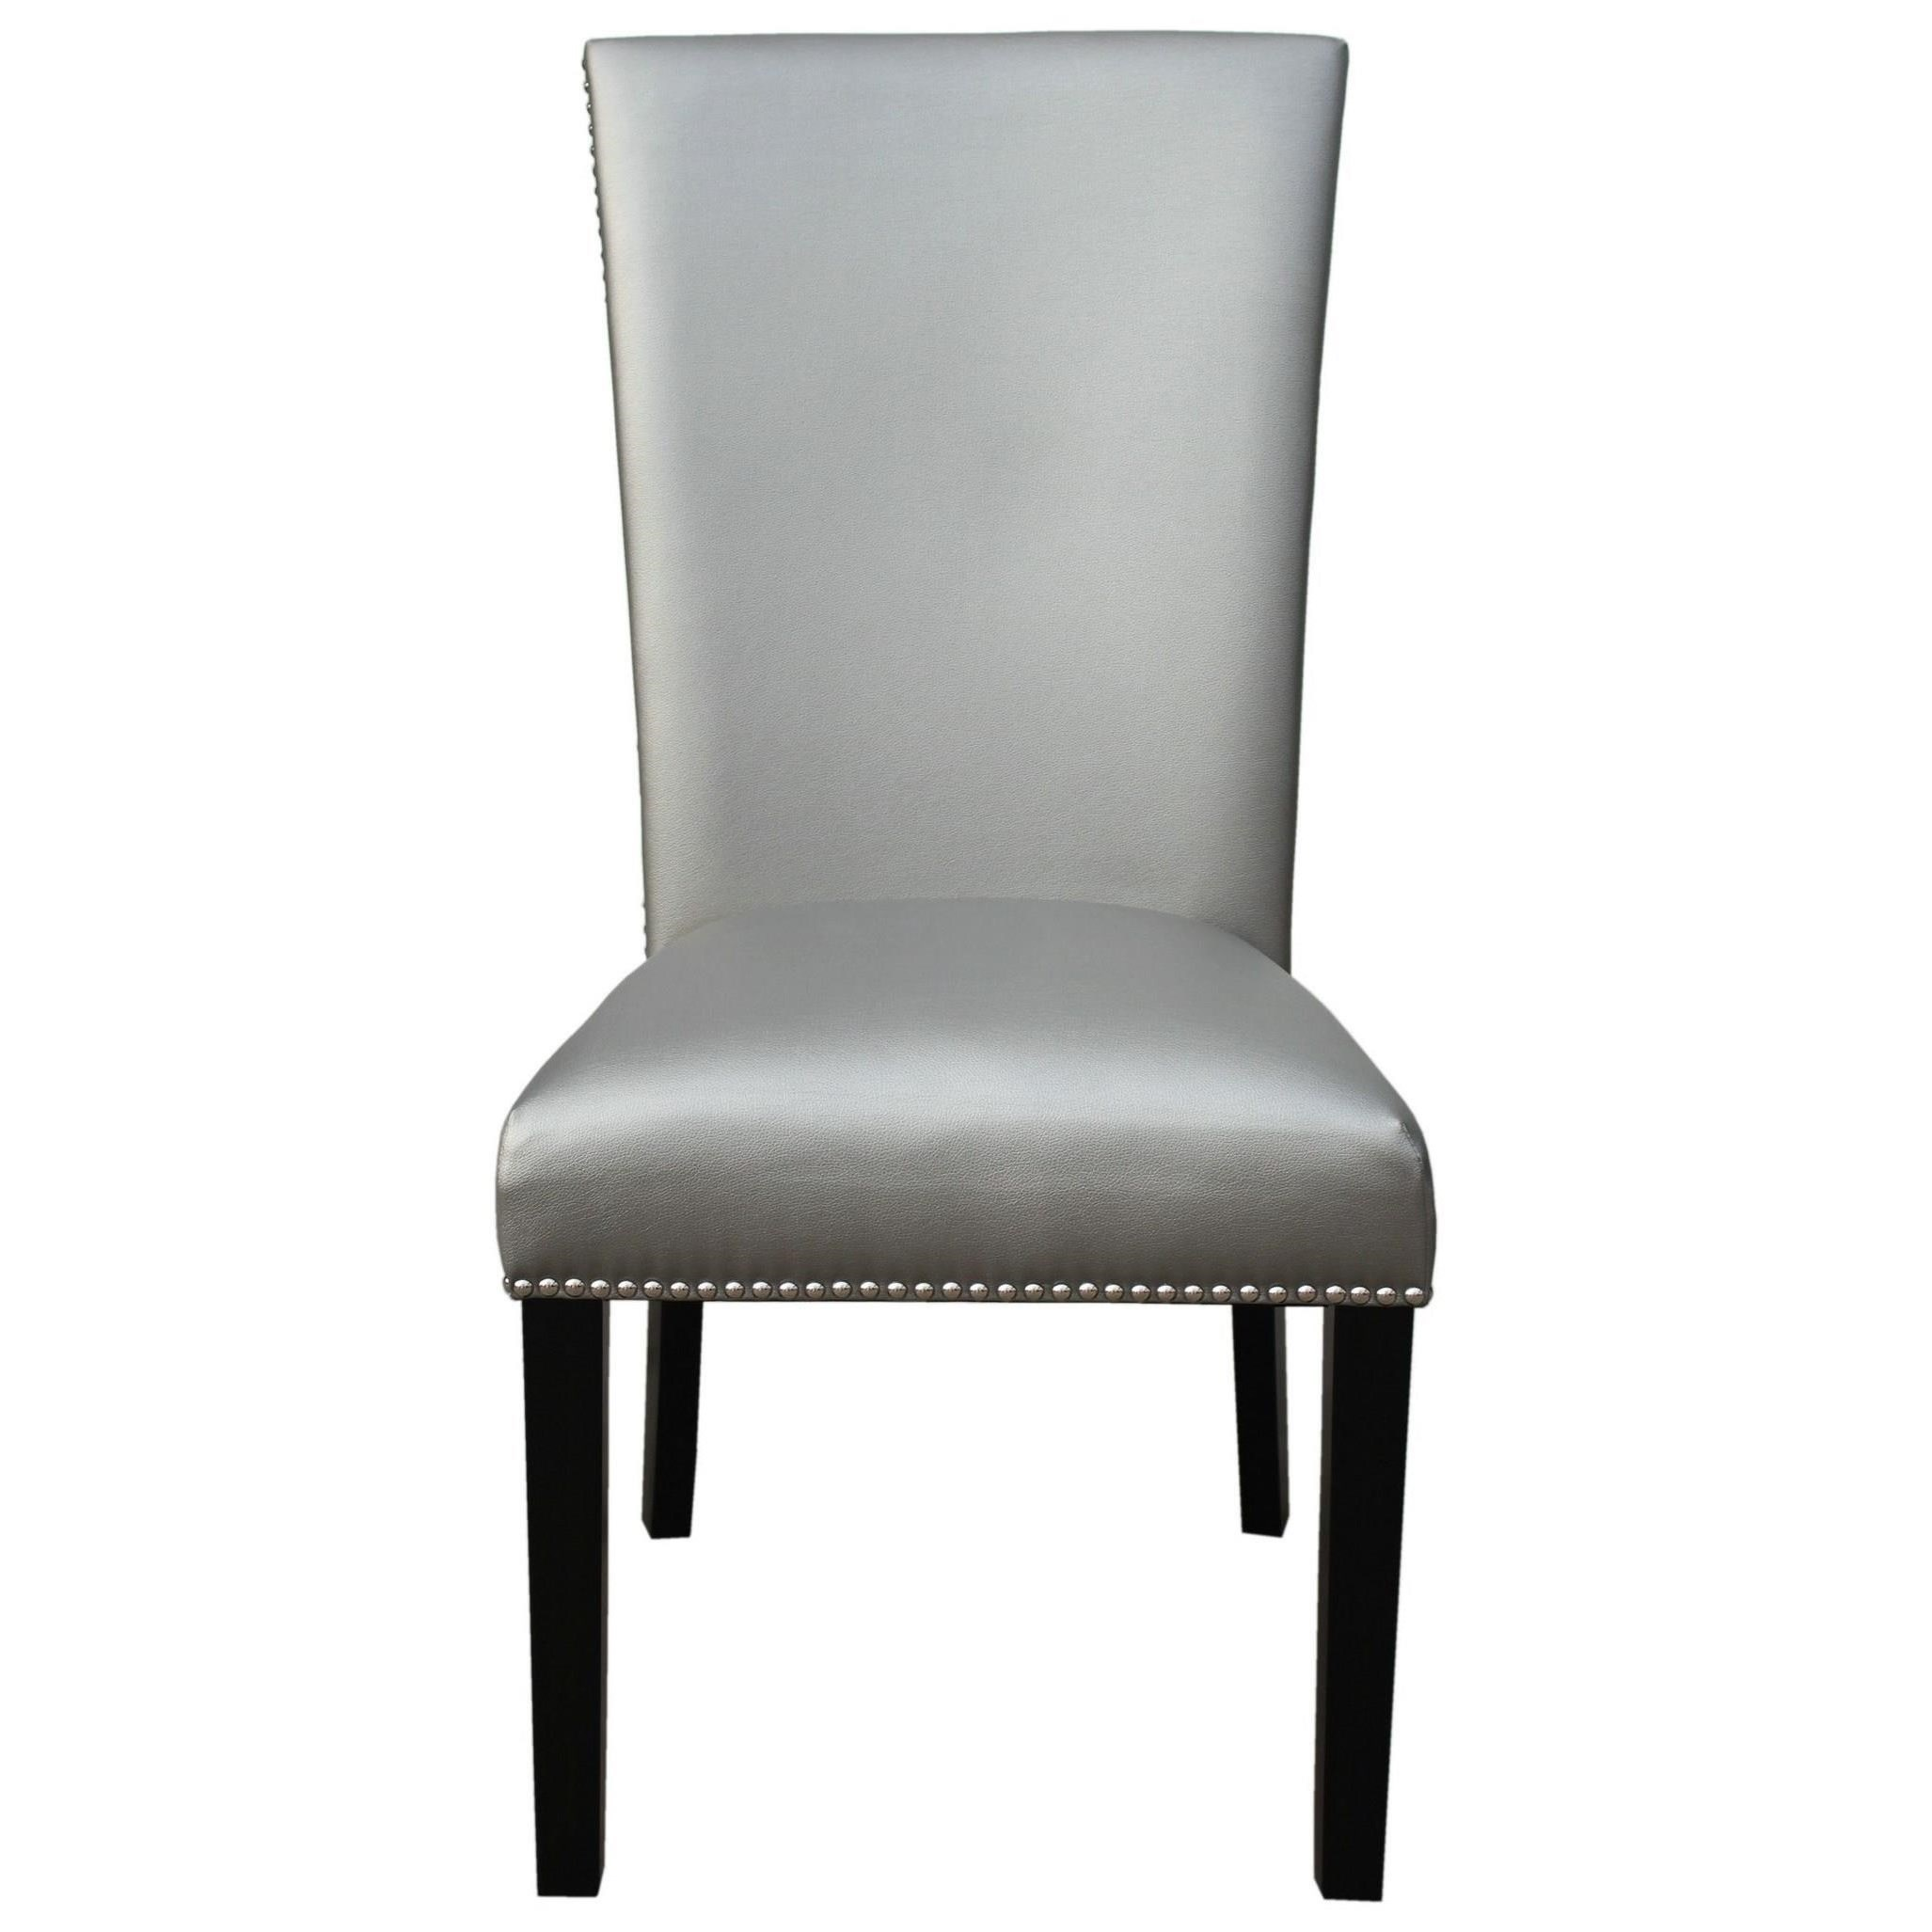 Upholstered Parsons Dining Chair with Nailhead